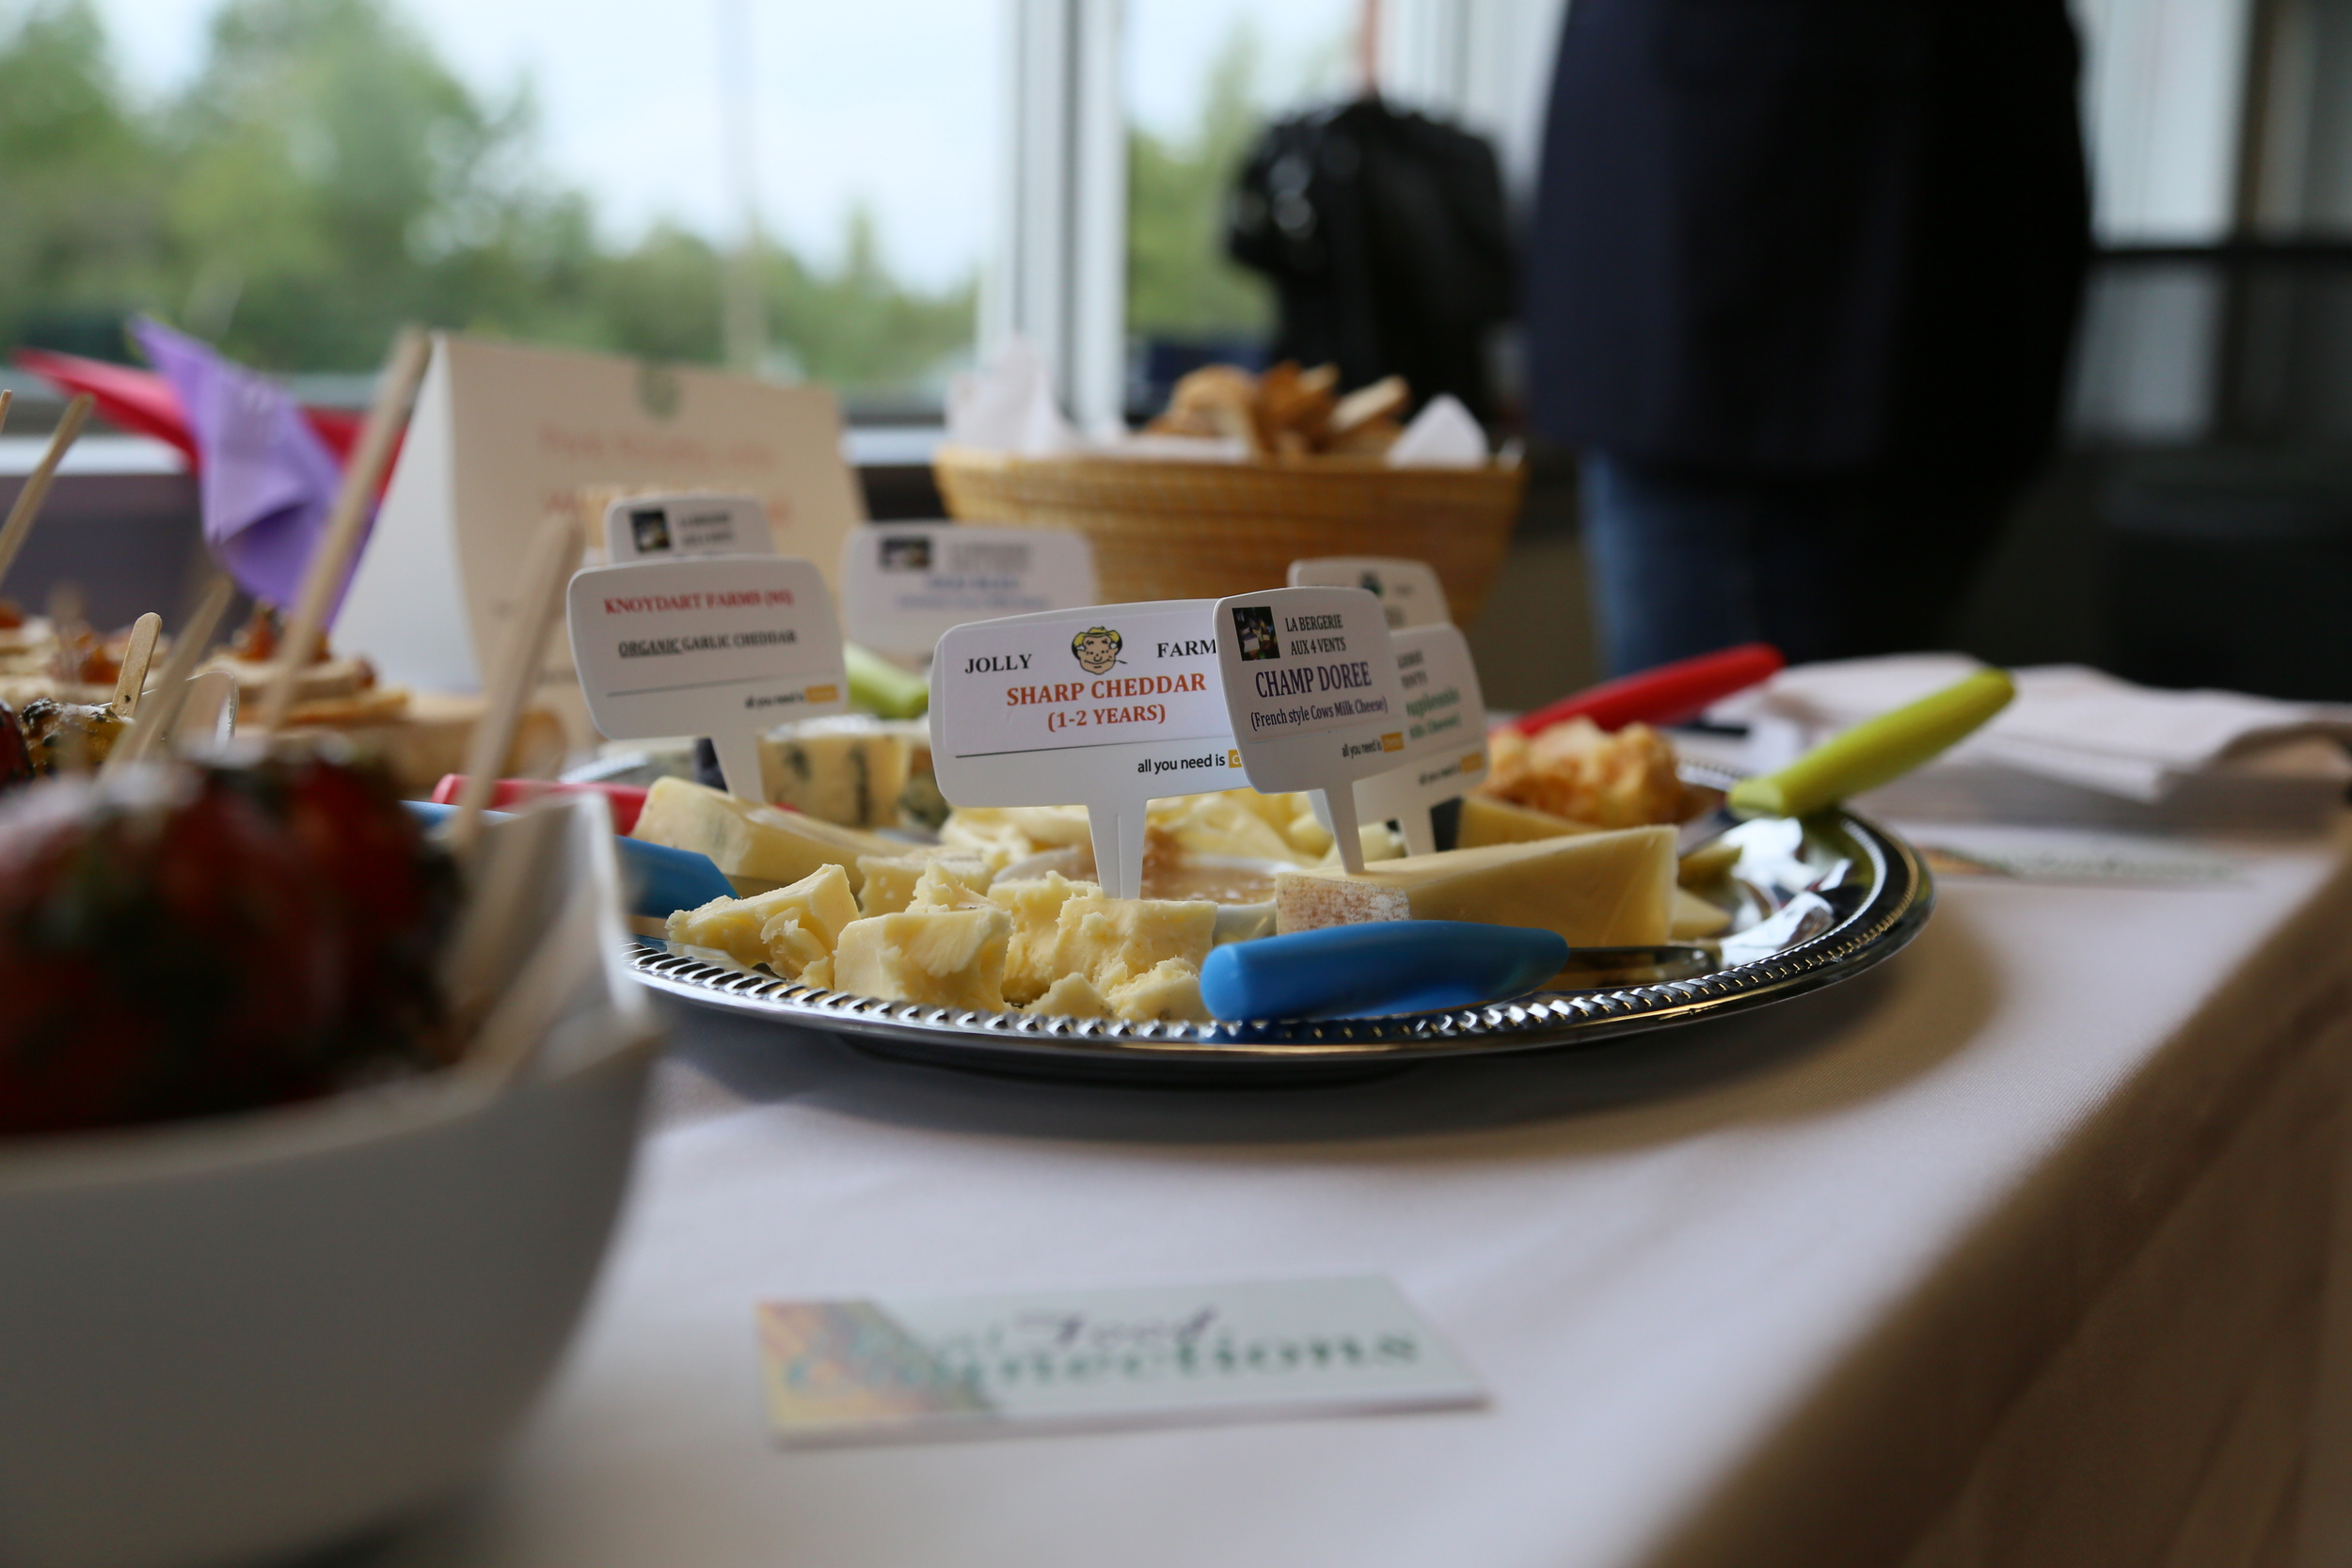 A local company called Real Food Connections has created a strong distribution and retail network for farmers in the region.